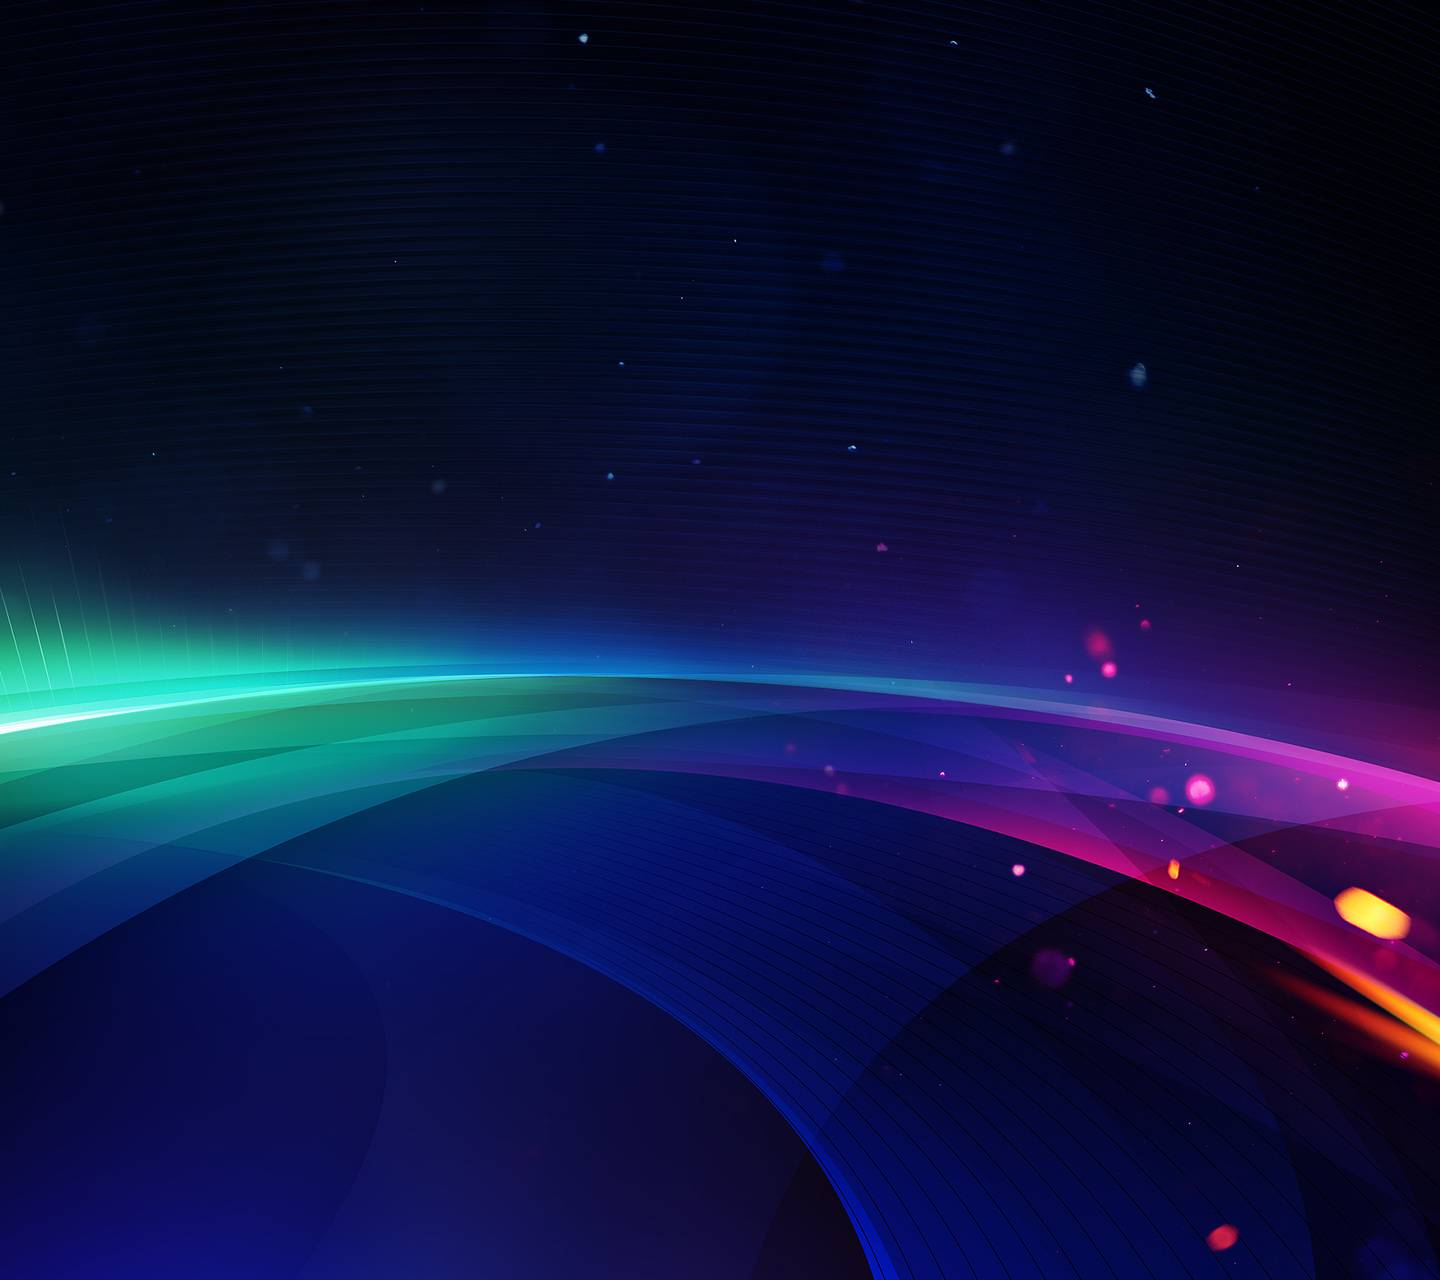 Windows Abstract Wallpaper By UnthinKable_